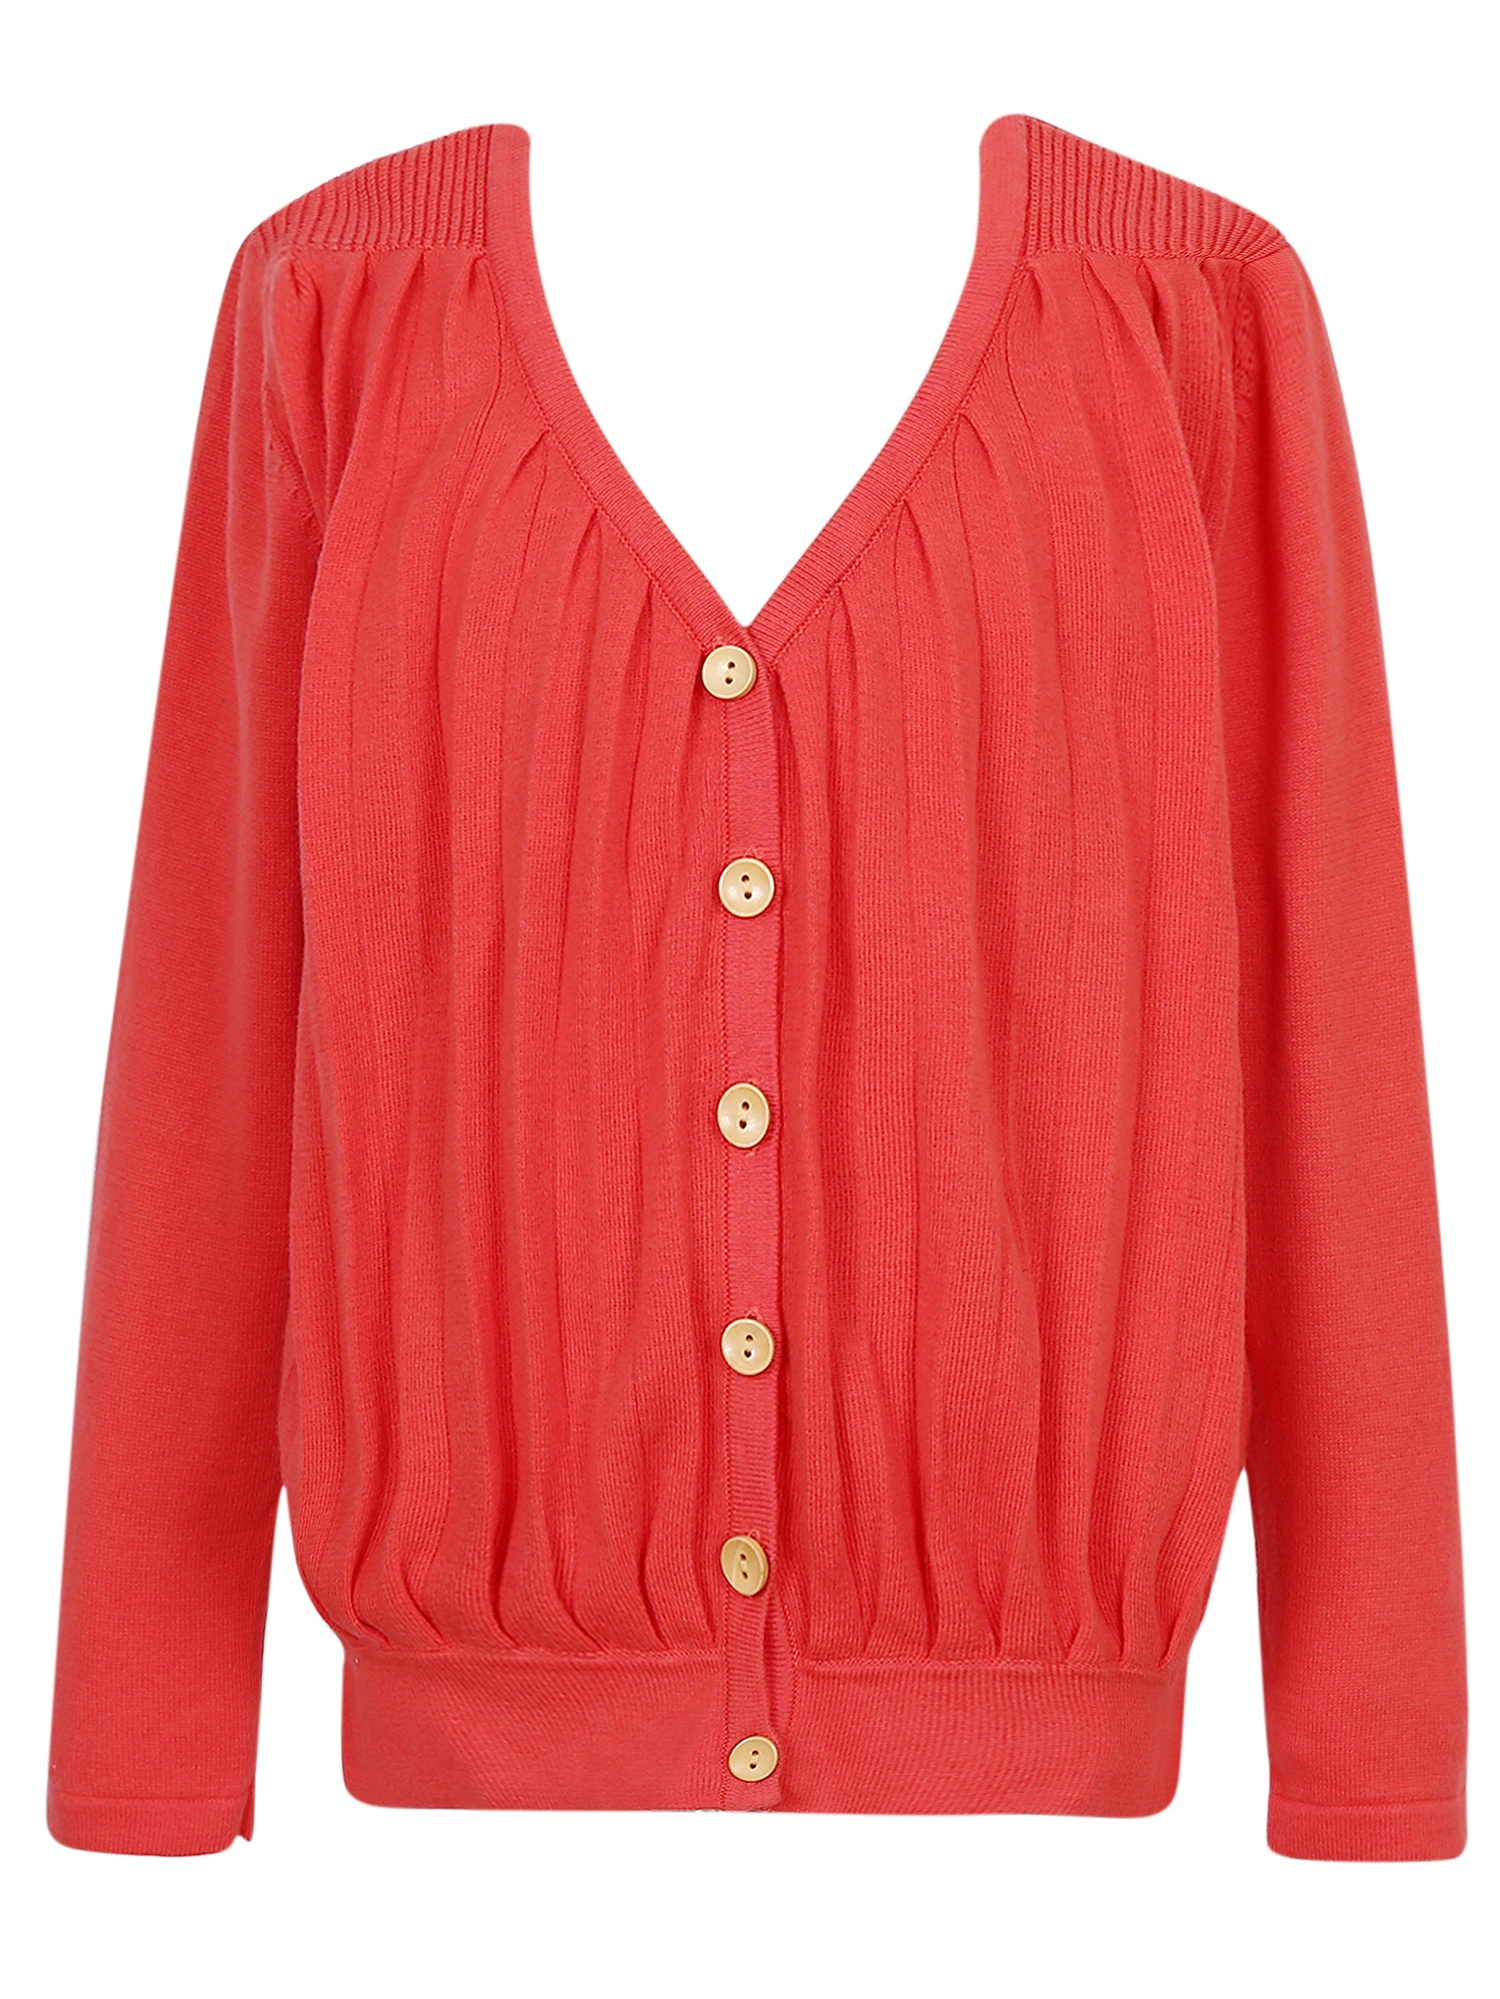 Little Girls Candy Rib Sleeve Hem Button Cardigan Sweater 5